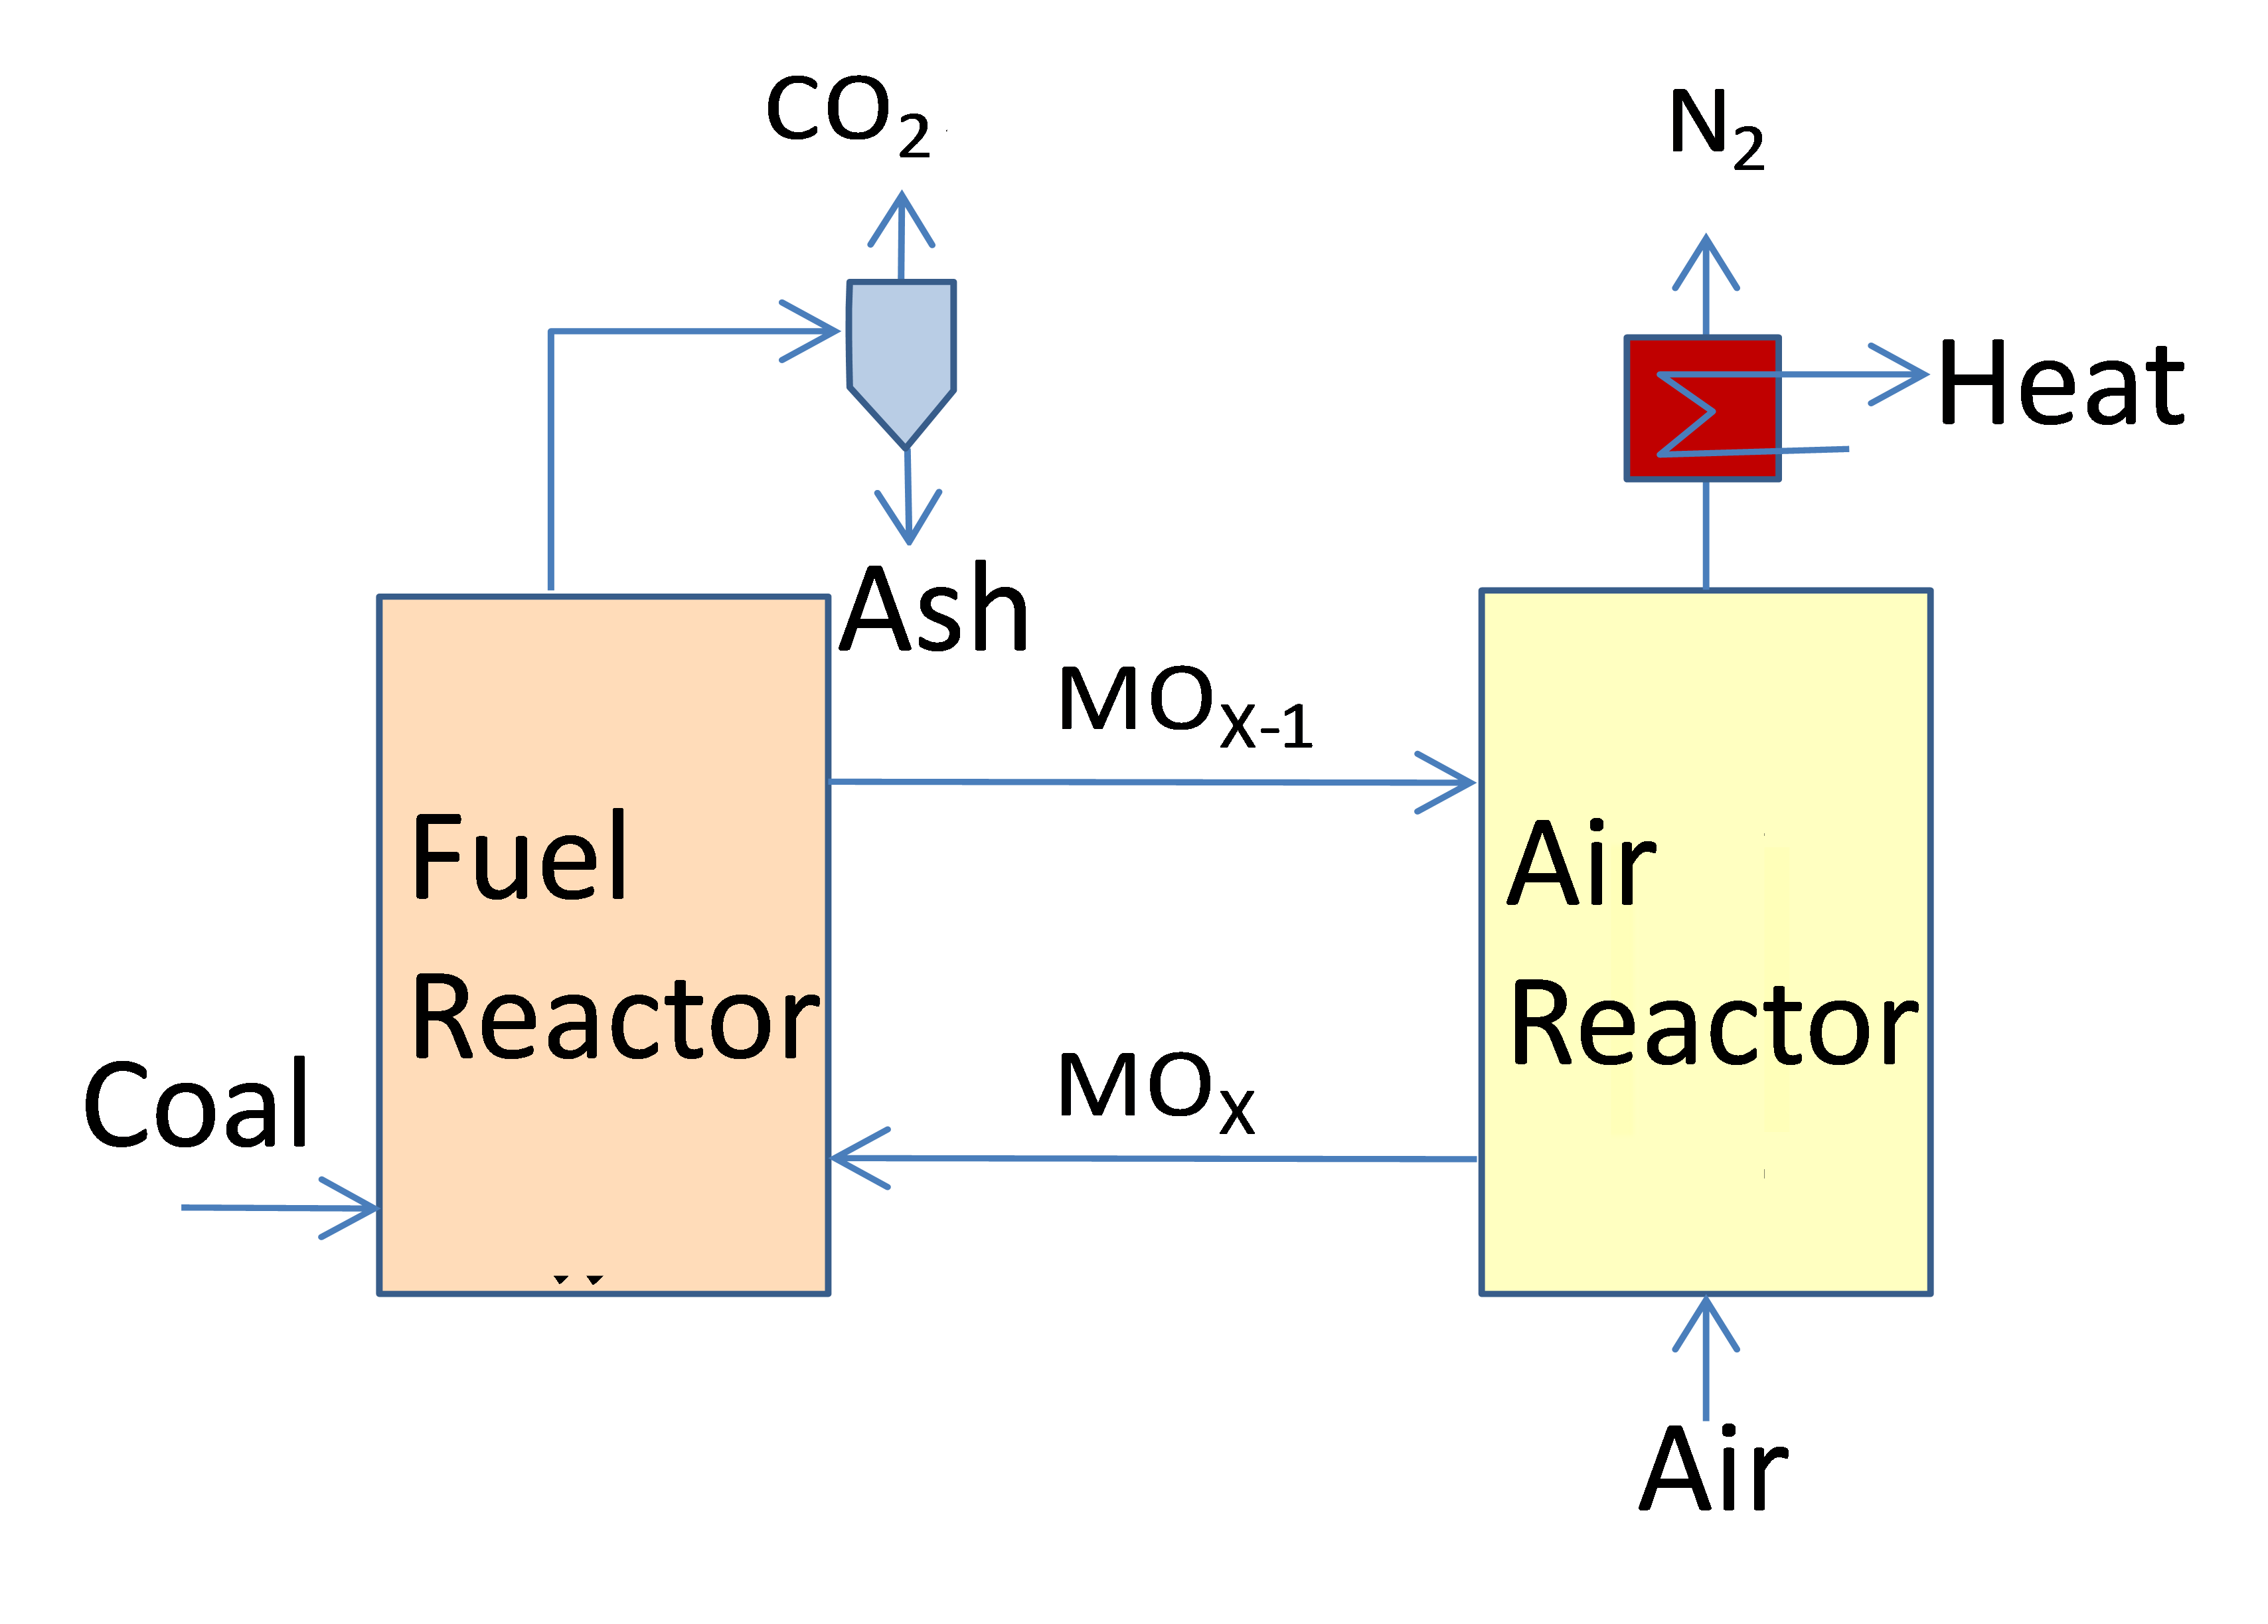 Japan Coal Energy Centerjapan Center Chemical Furnace Schematic 2technology Development Of Looping Combustion With Carbon Dioxide Separation